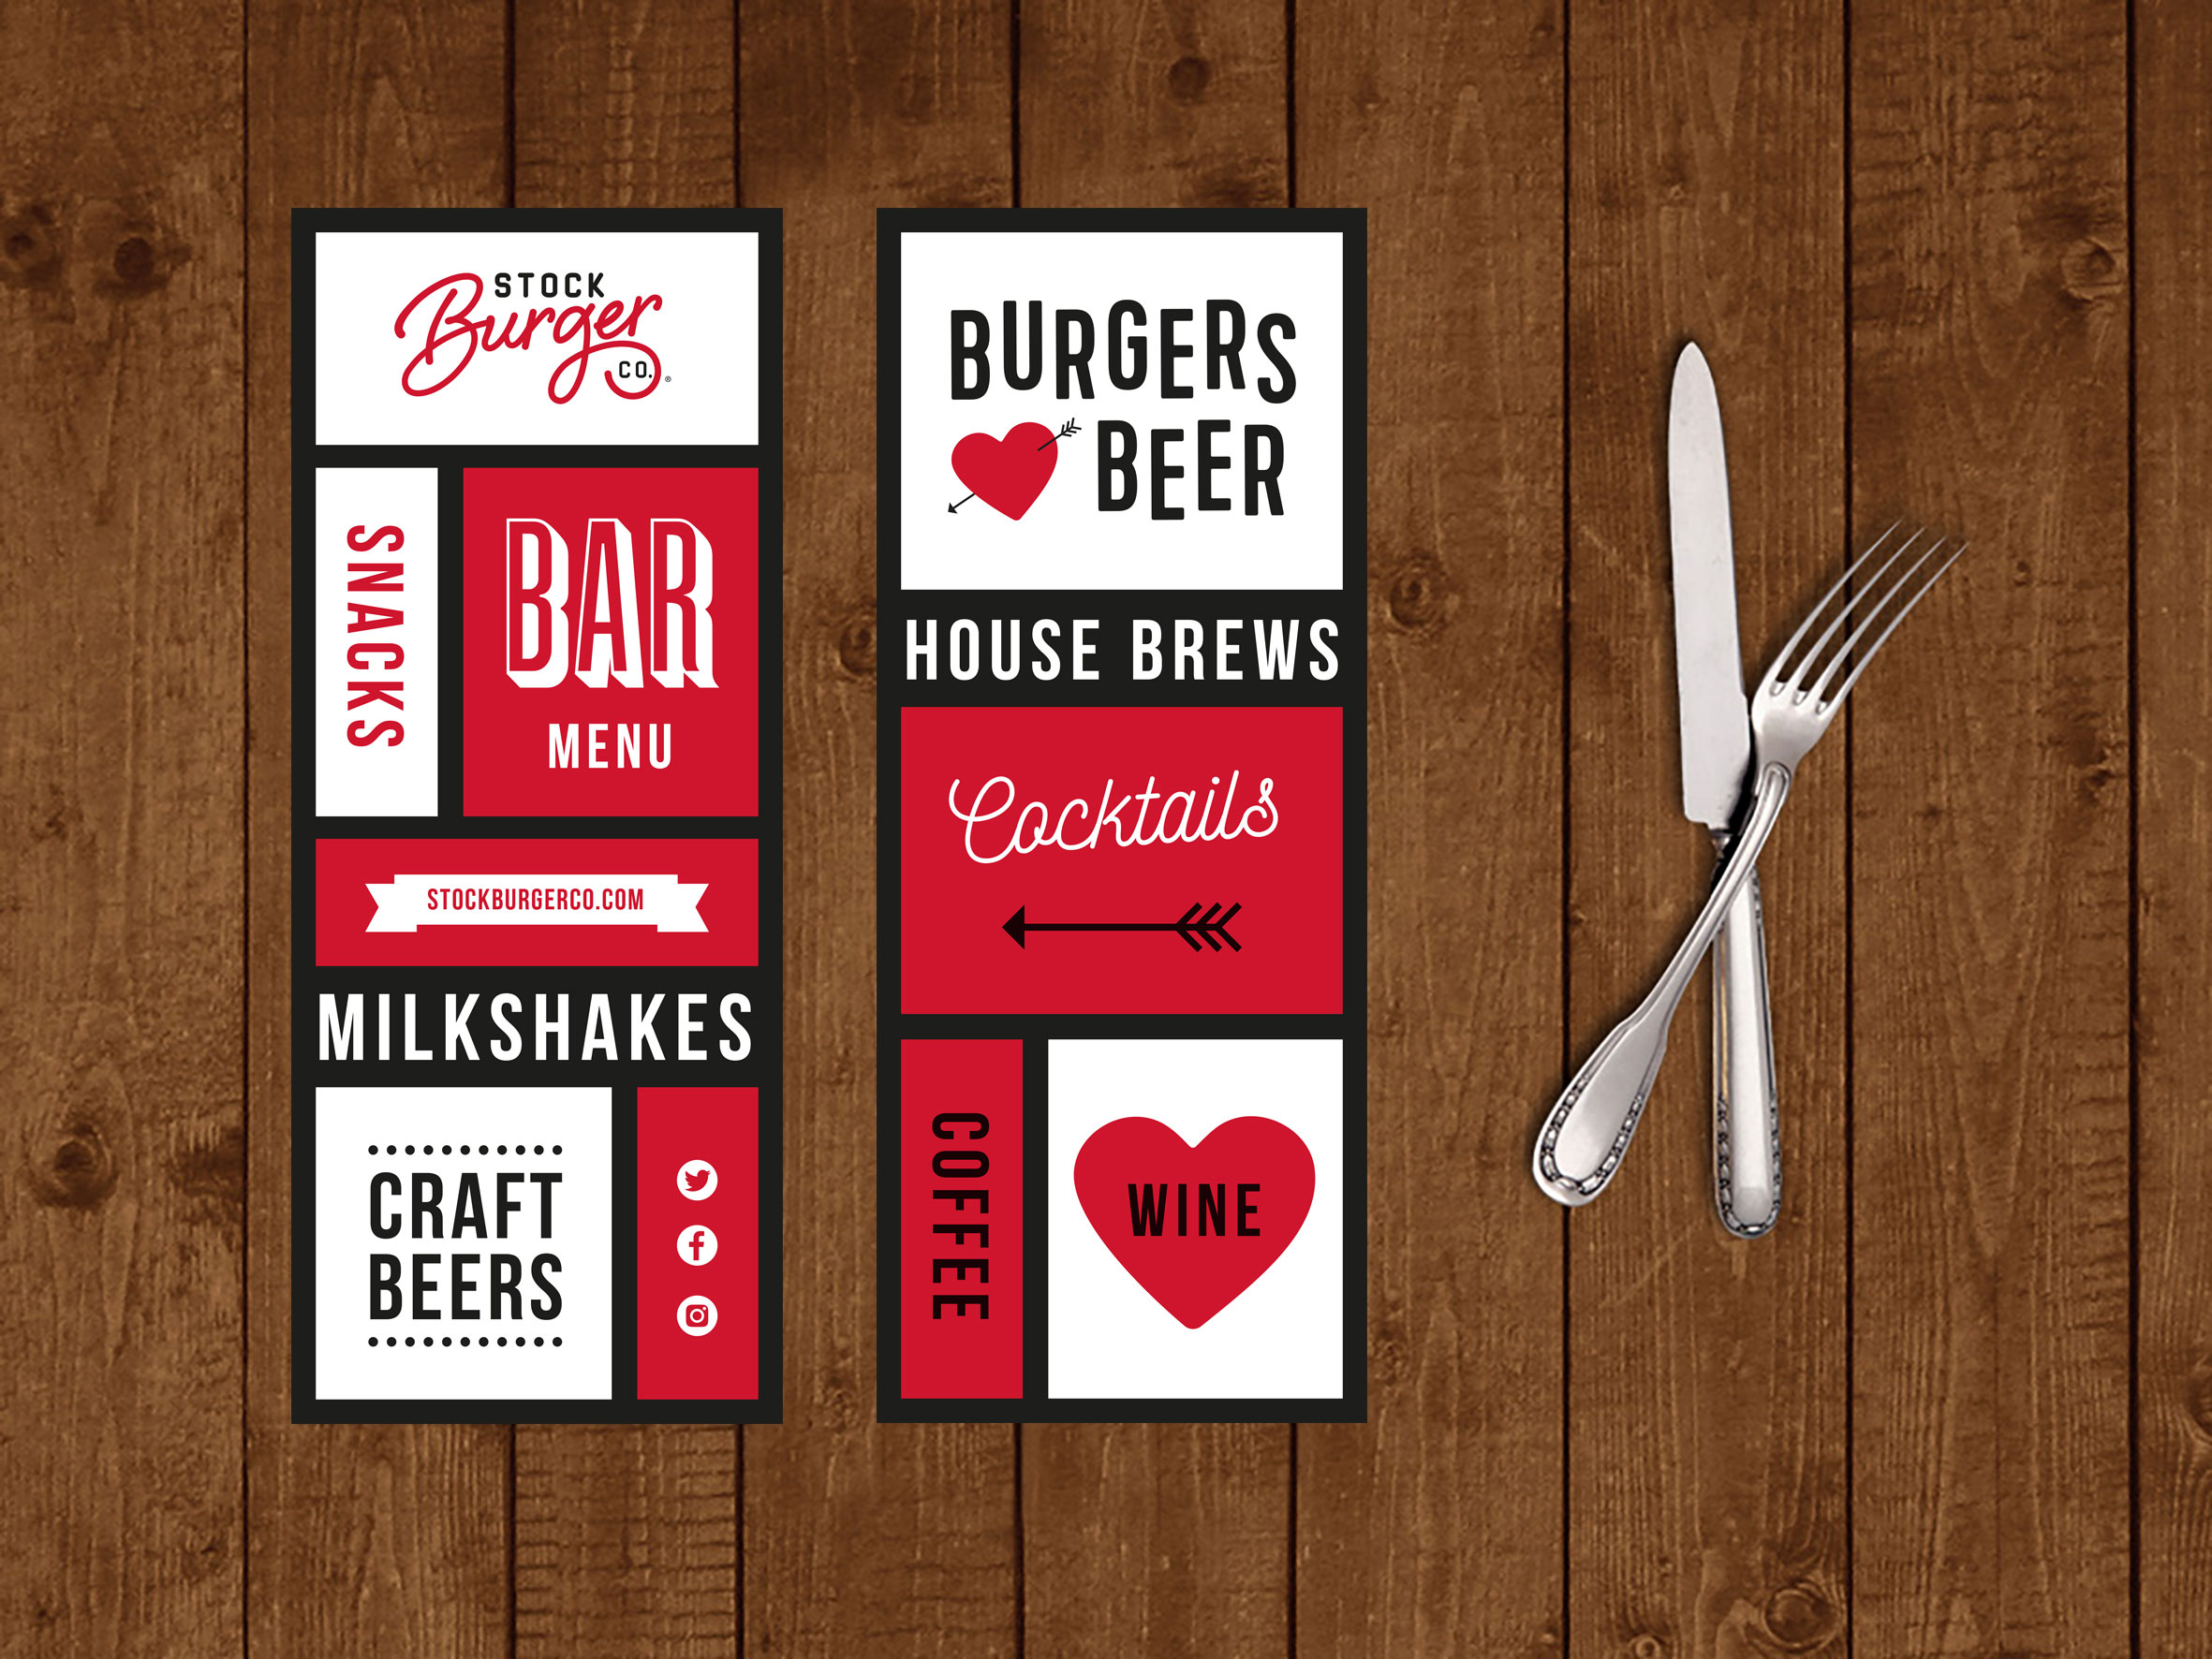 Stock Burger Bar Menu